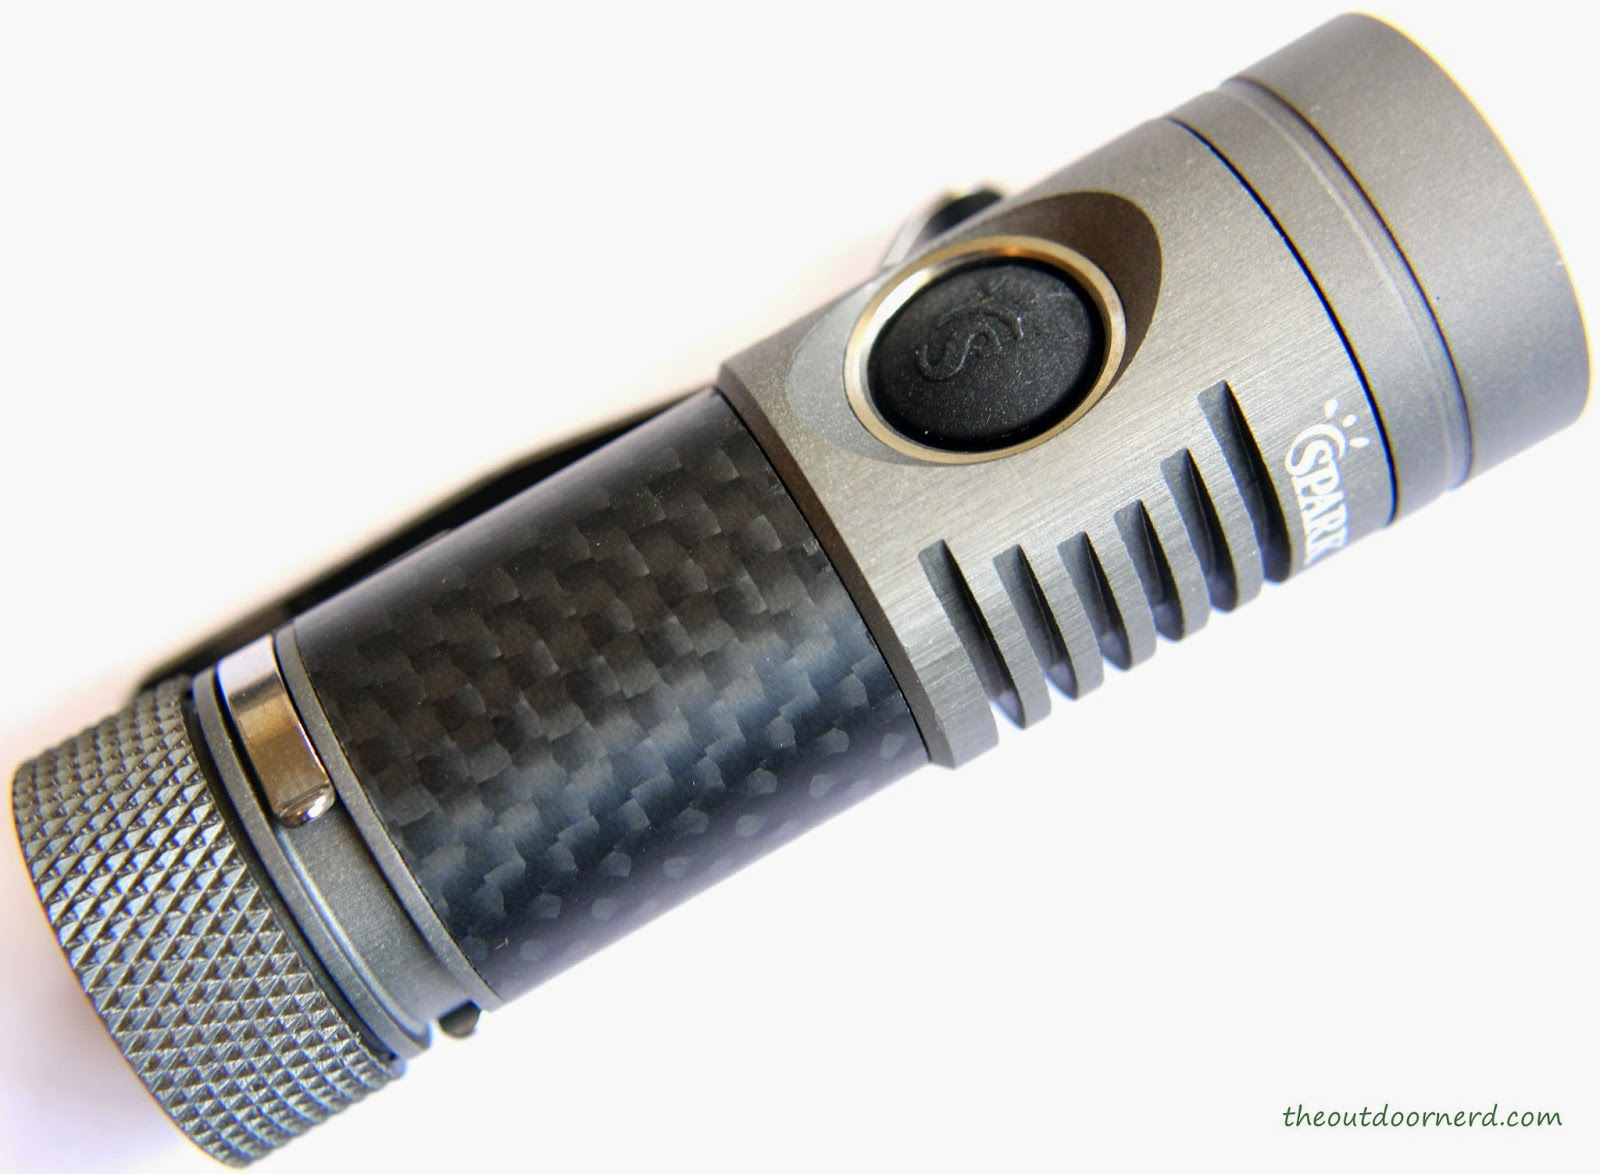 Spark SF3 1xCR123A Flashlight Product View 2